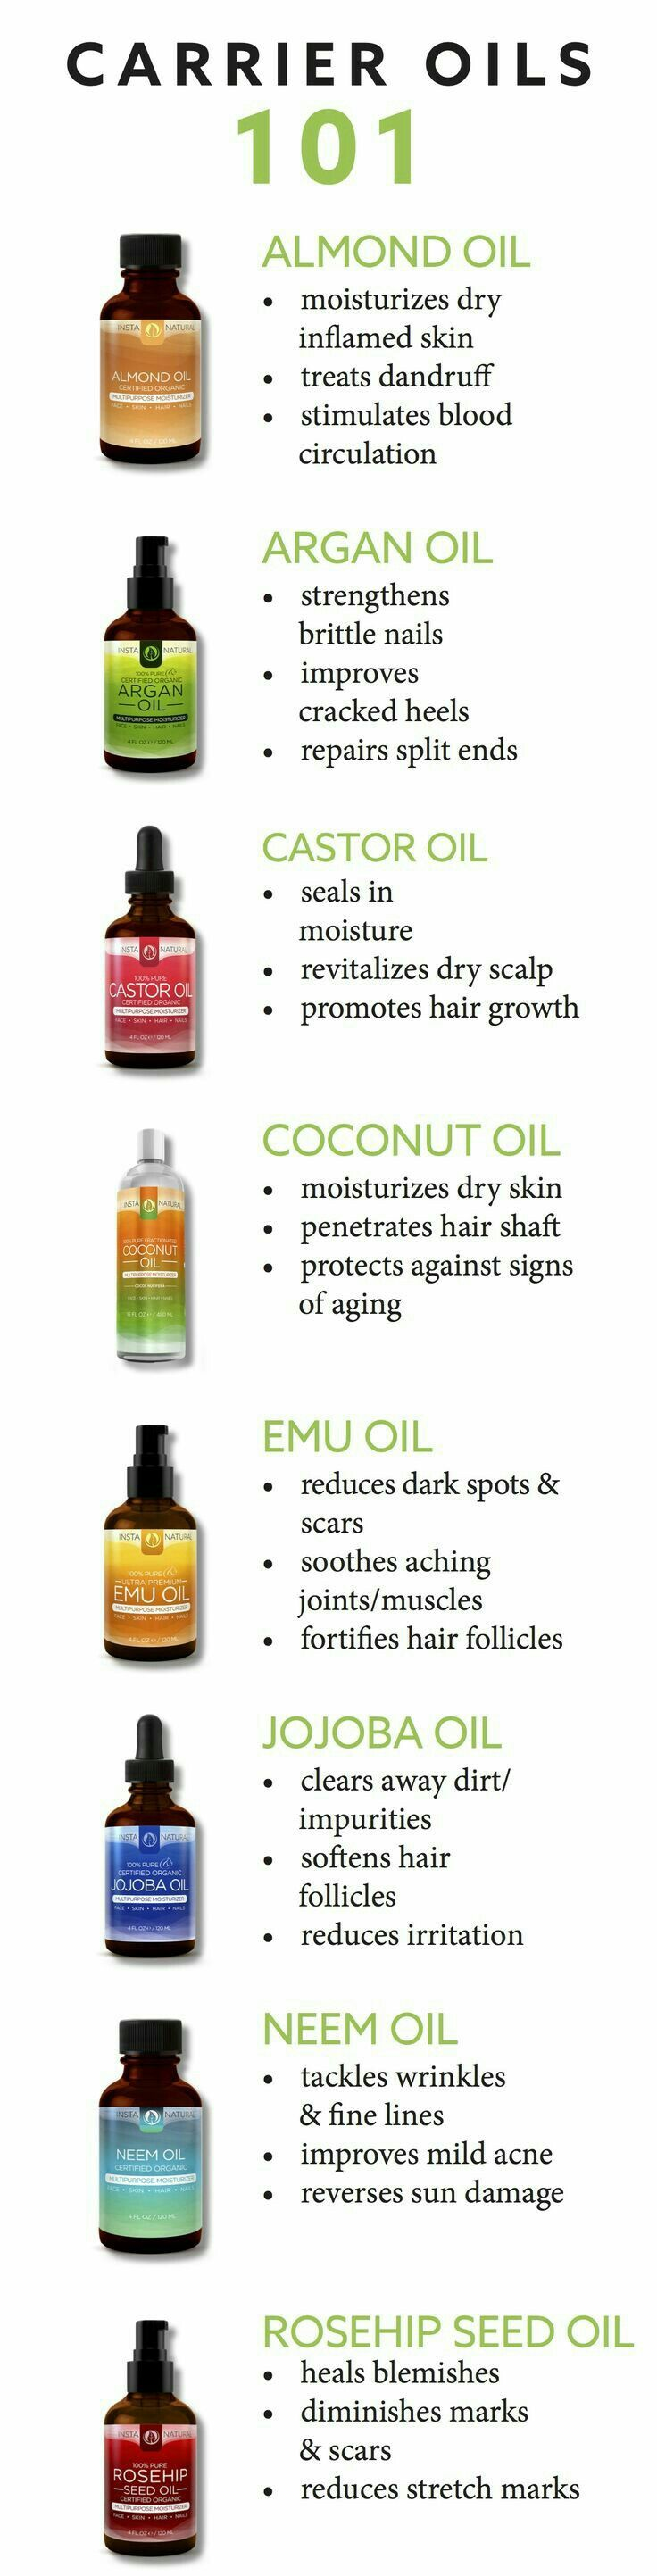 Carrier oils are known as base oil or vegetable oil. They are used to dilute essential oils and absolutes before they are applied to the skin in massage and aromatherapy.